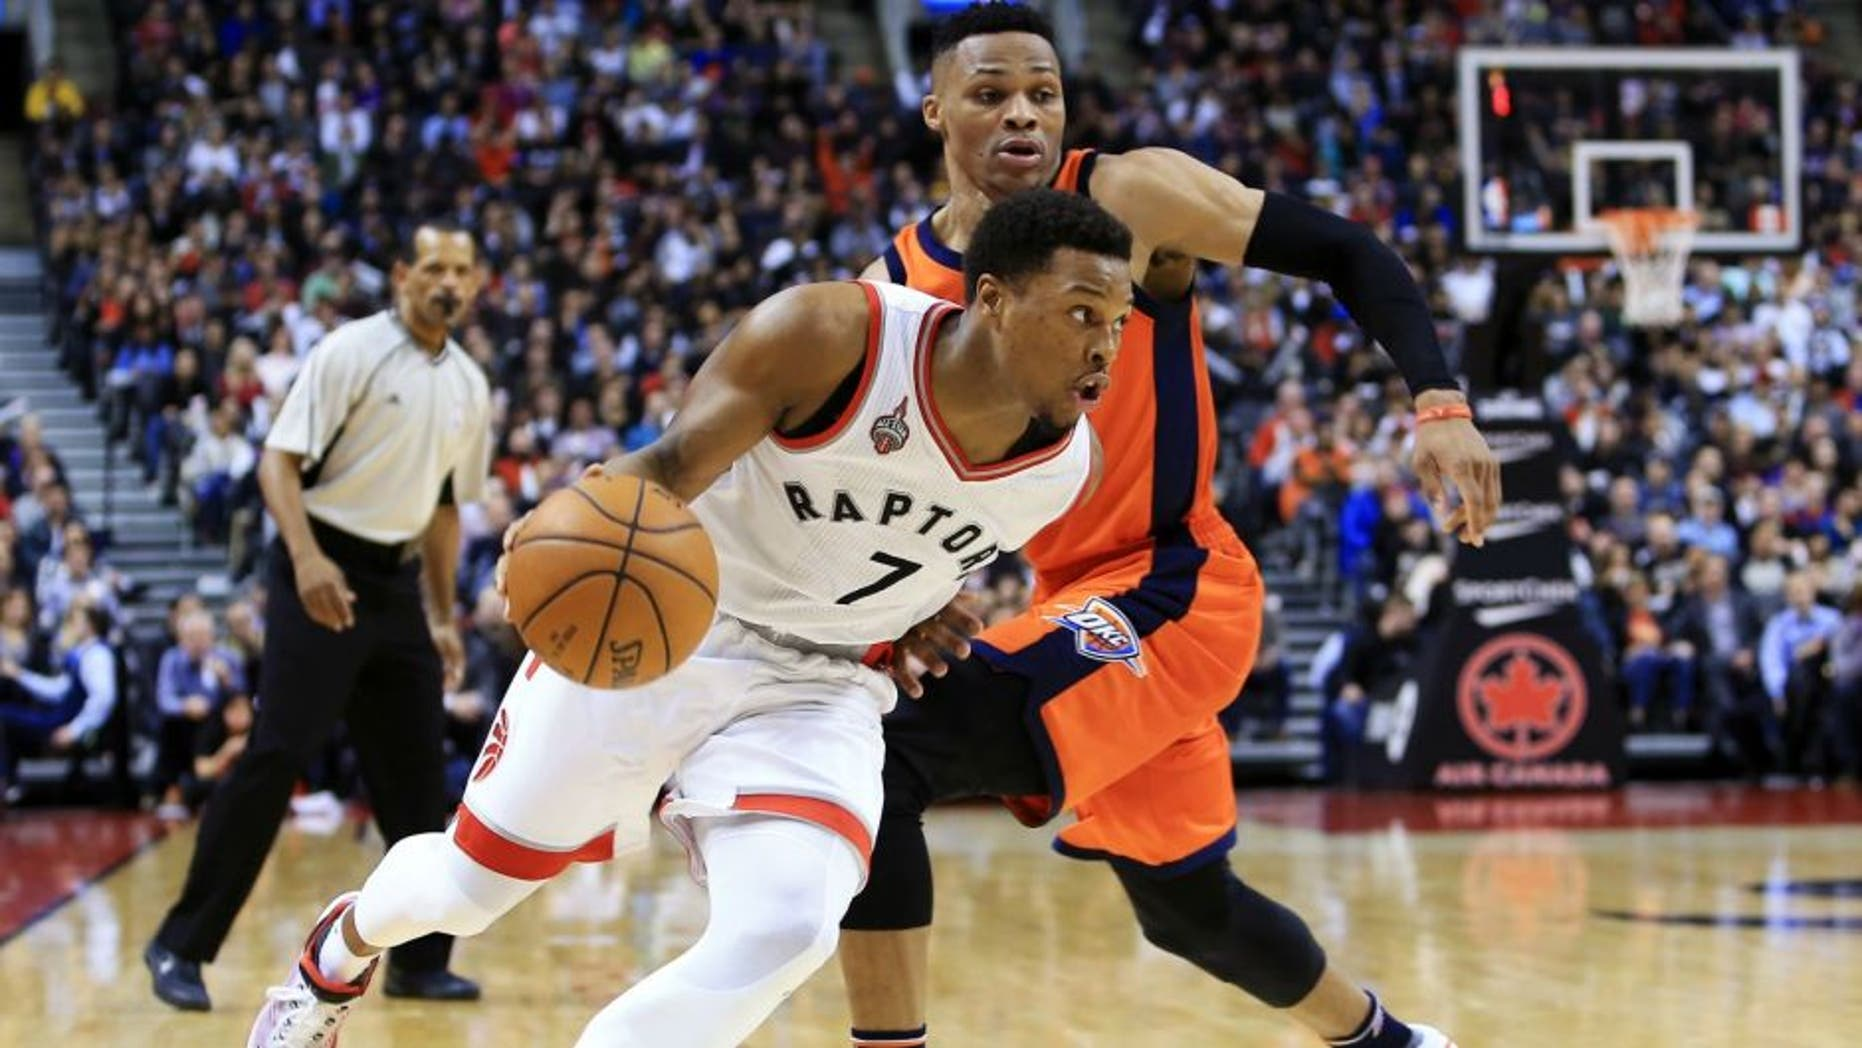 TORONTO, ON - MARCH 28: Kyle Lowry #7 of the Toronto Raptors dribbles the ball past Russell Westbrook #0 of the Oklahoma City Thunder during the second half of an NBA game at the Air Canada Centre on March 28, 2016 in Toronto, Ontario, Canada. NOTE TO USER: User expressly acknowledges and agrees that, by downloading and or using this photograph, User is consenting to the terms and conditions of the Getty Images License Agreement. (Photo by Vaughn Ridley/Getty Images)